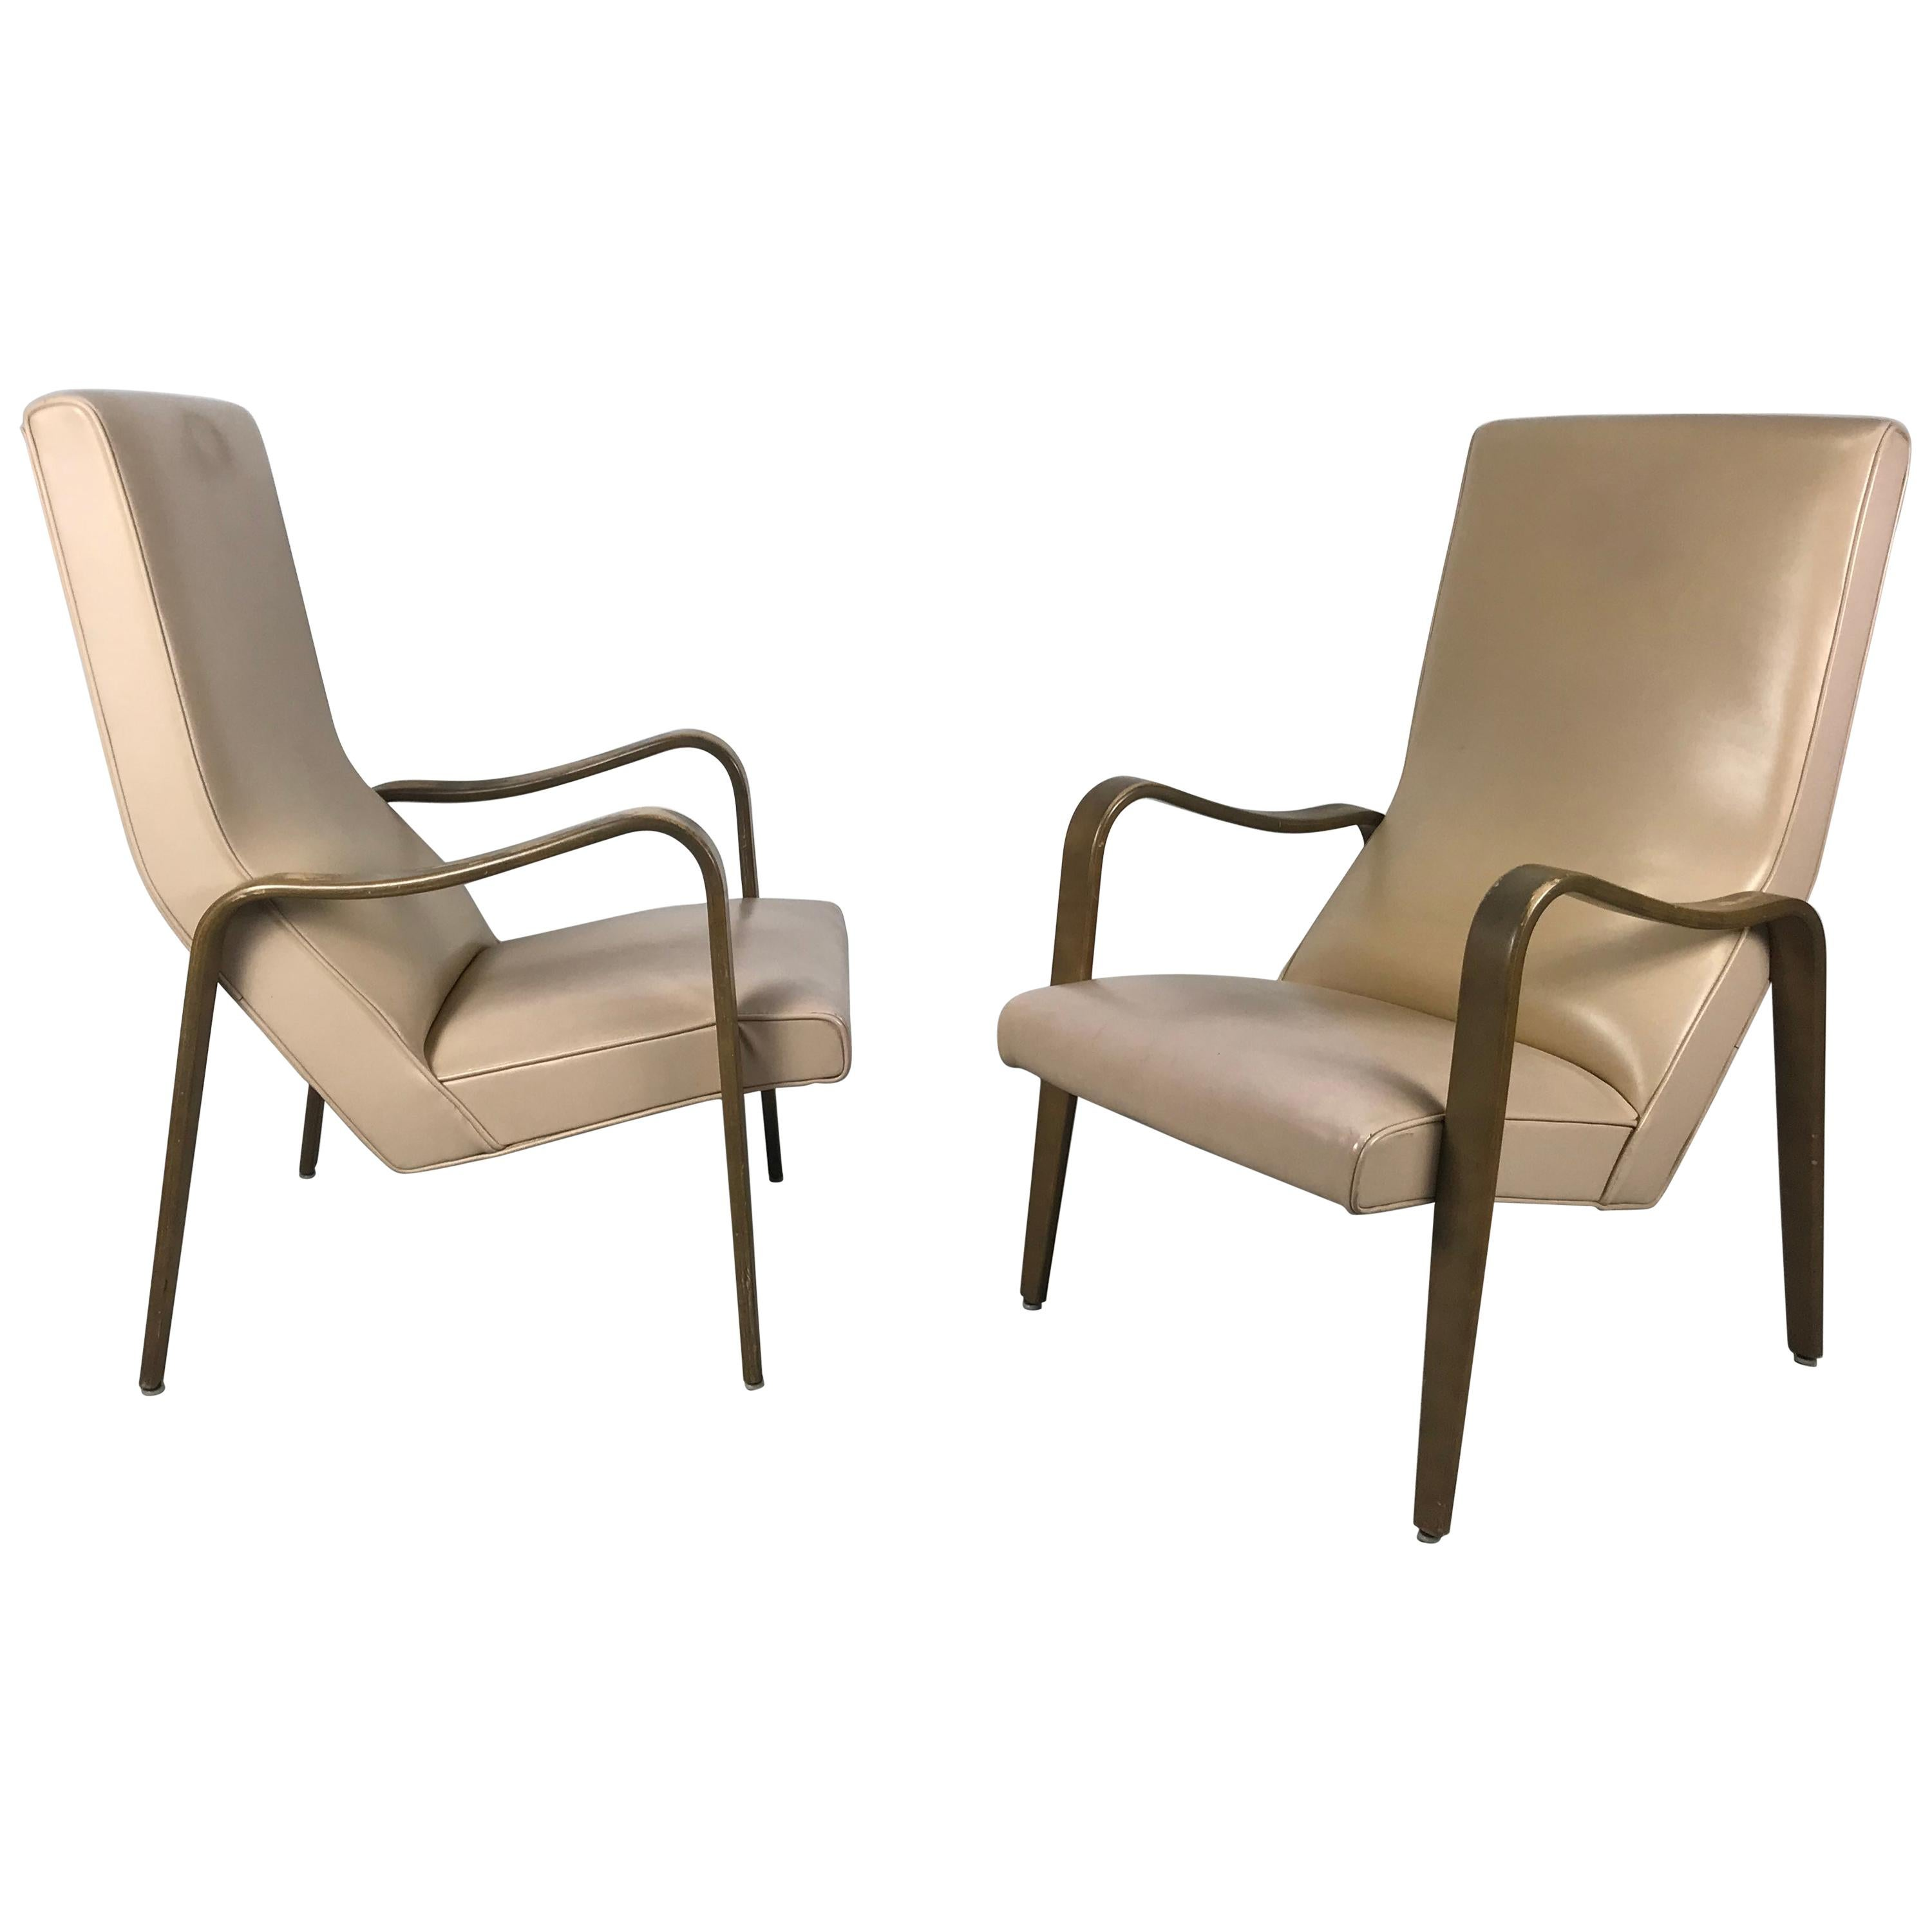 Pair of Classic Mid-Century Modern Bentwood Lounge Chairs by Thonet